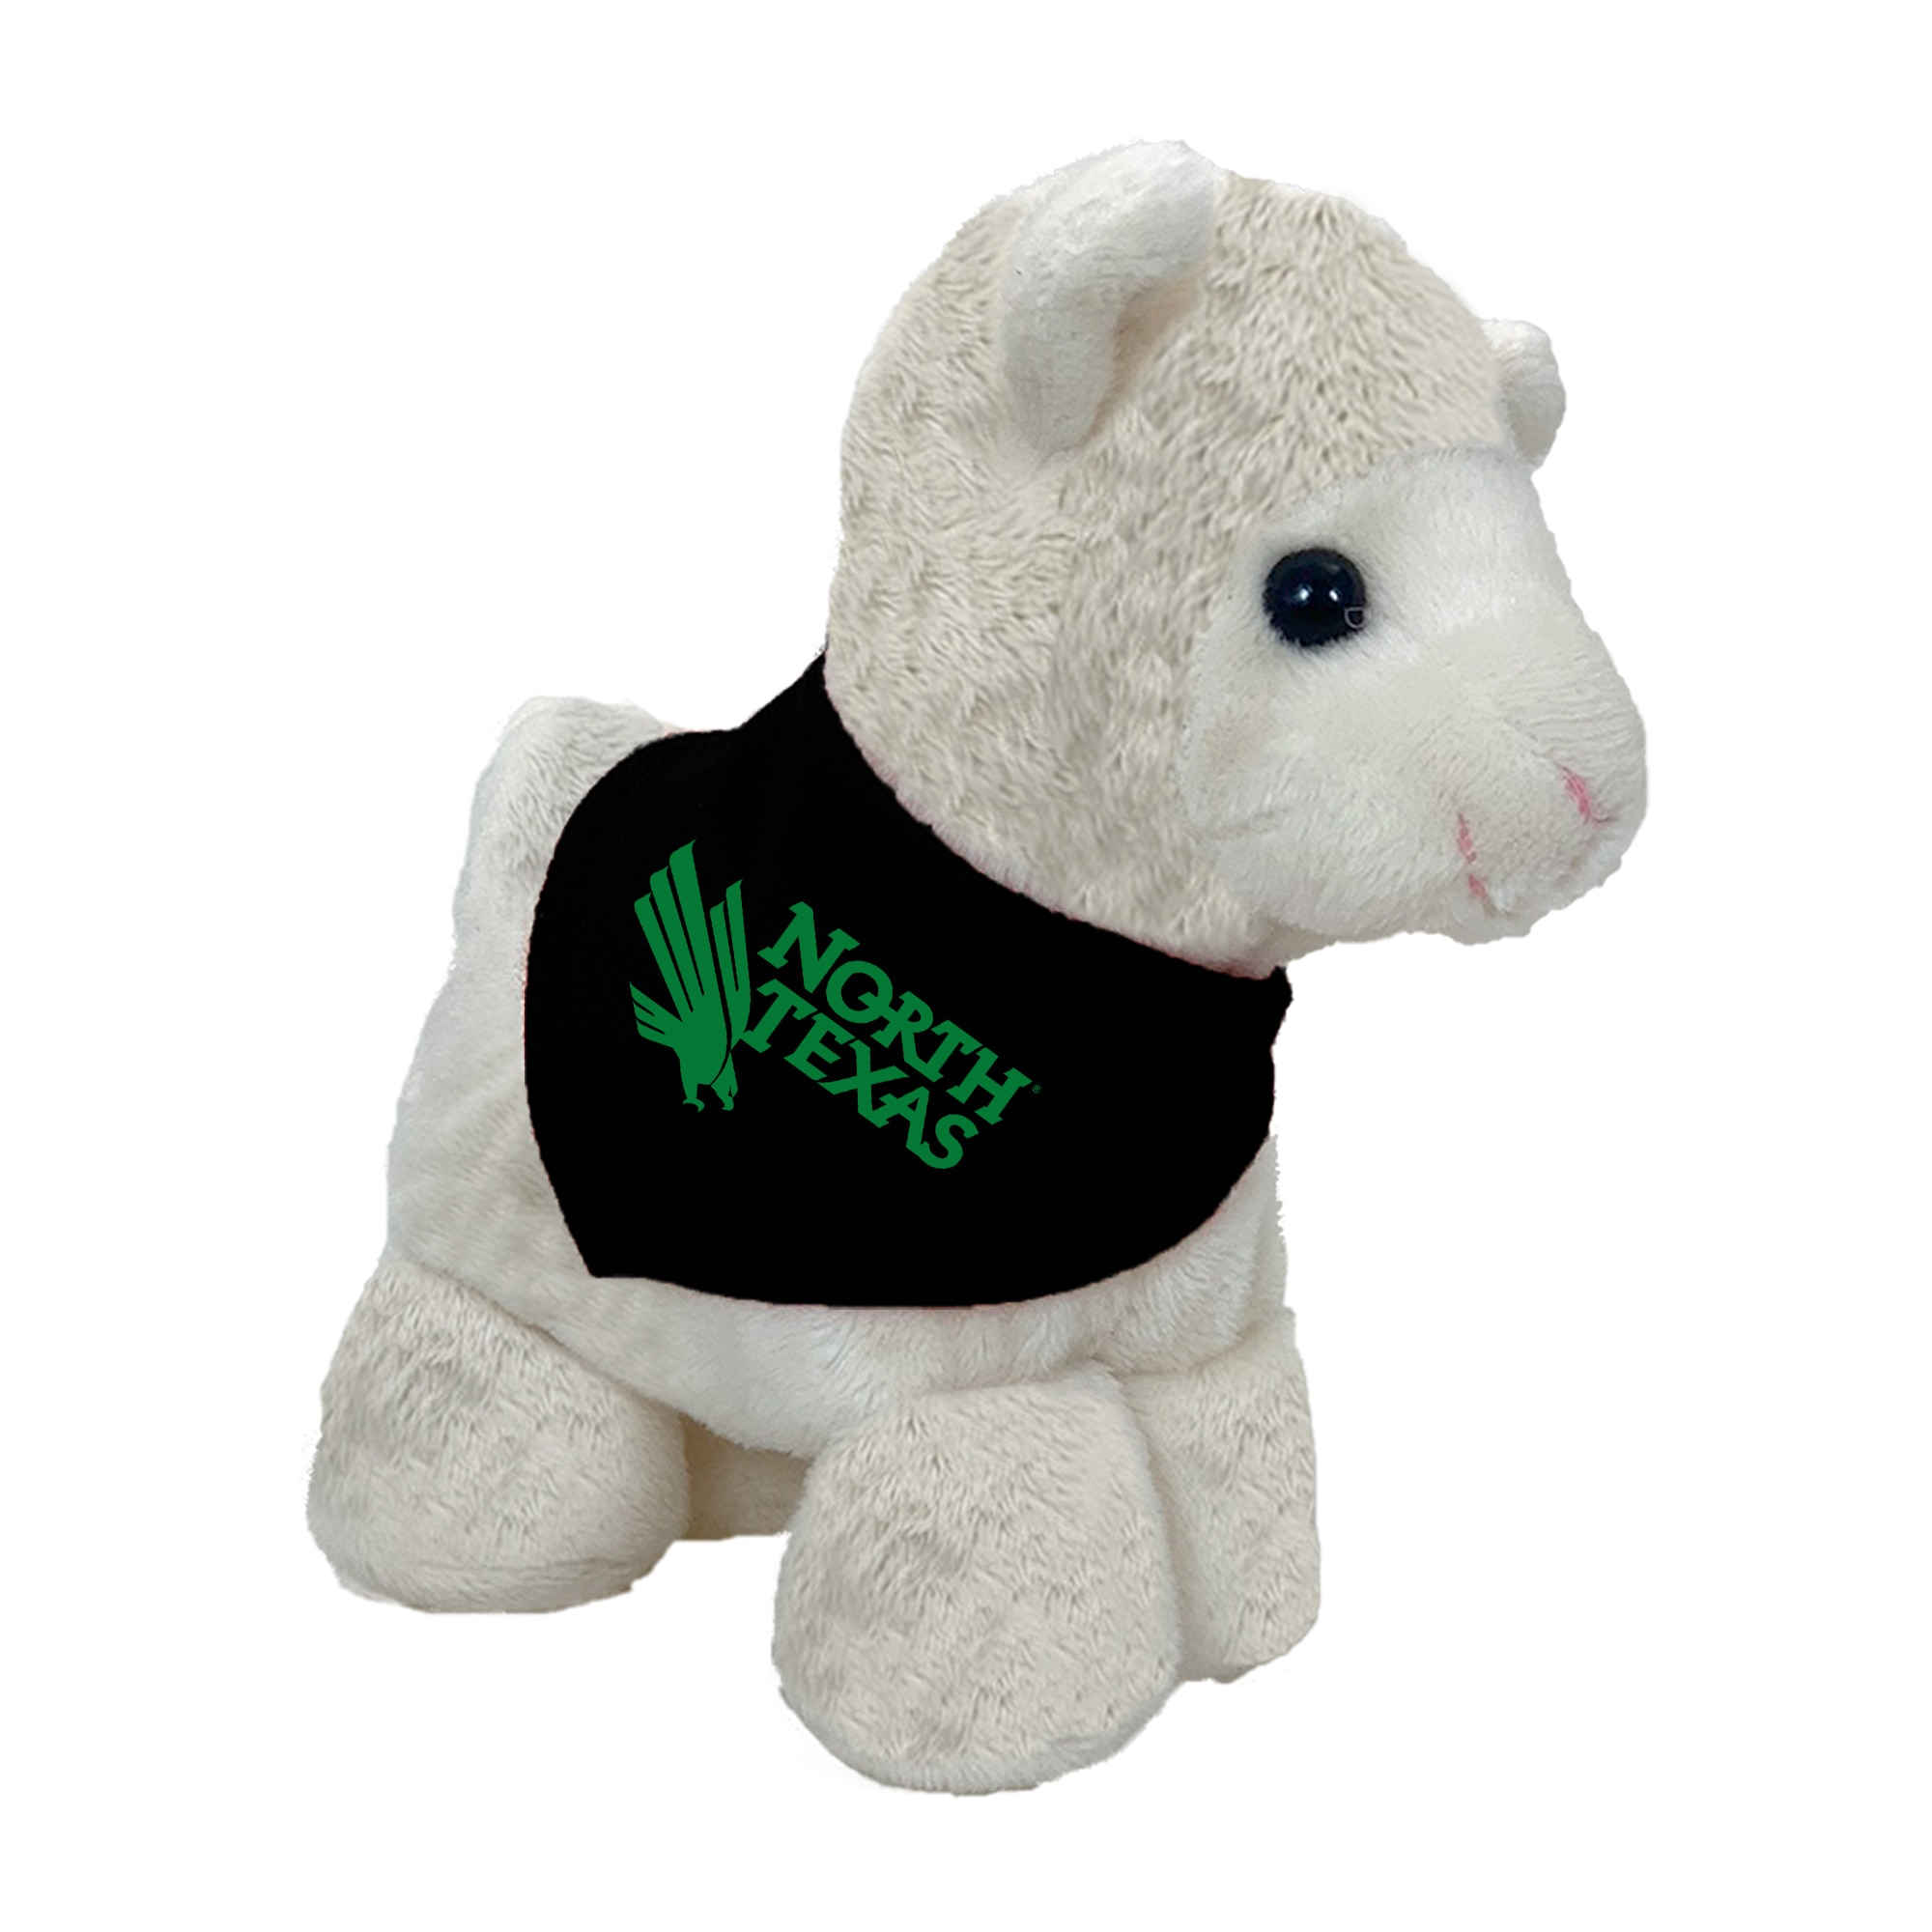 University of North Texas 6in Plush Llama Short Stack with Bandana